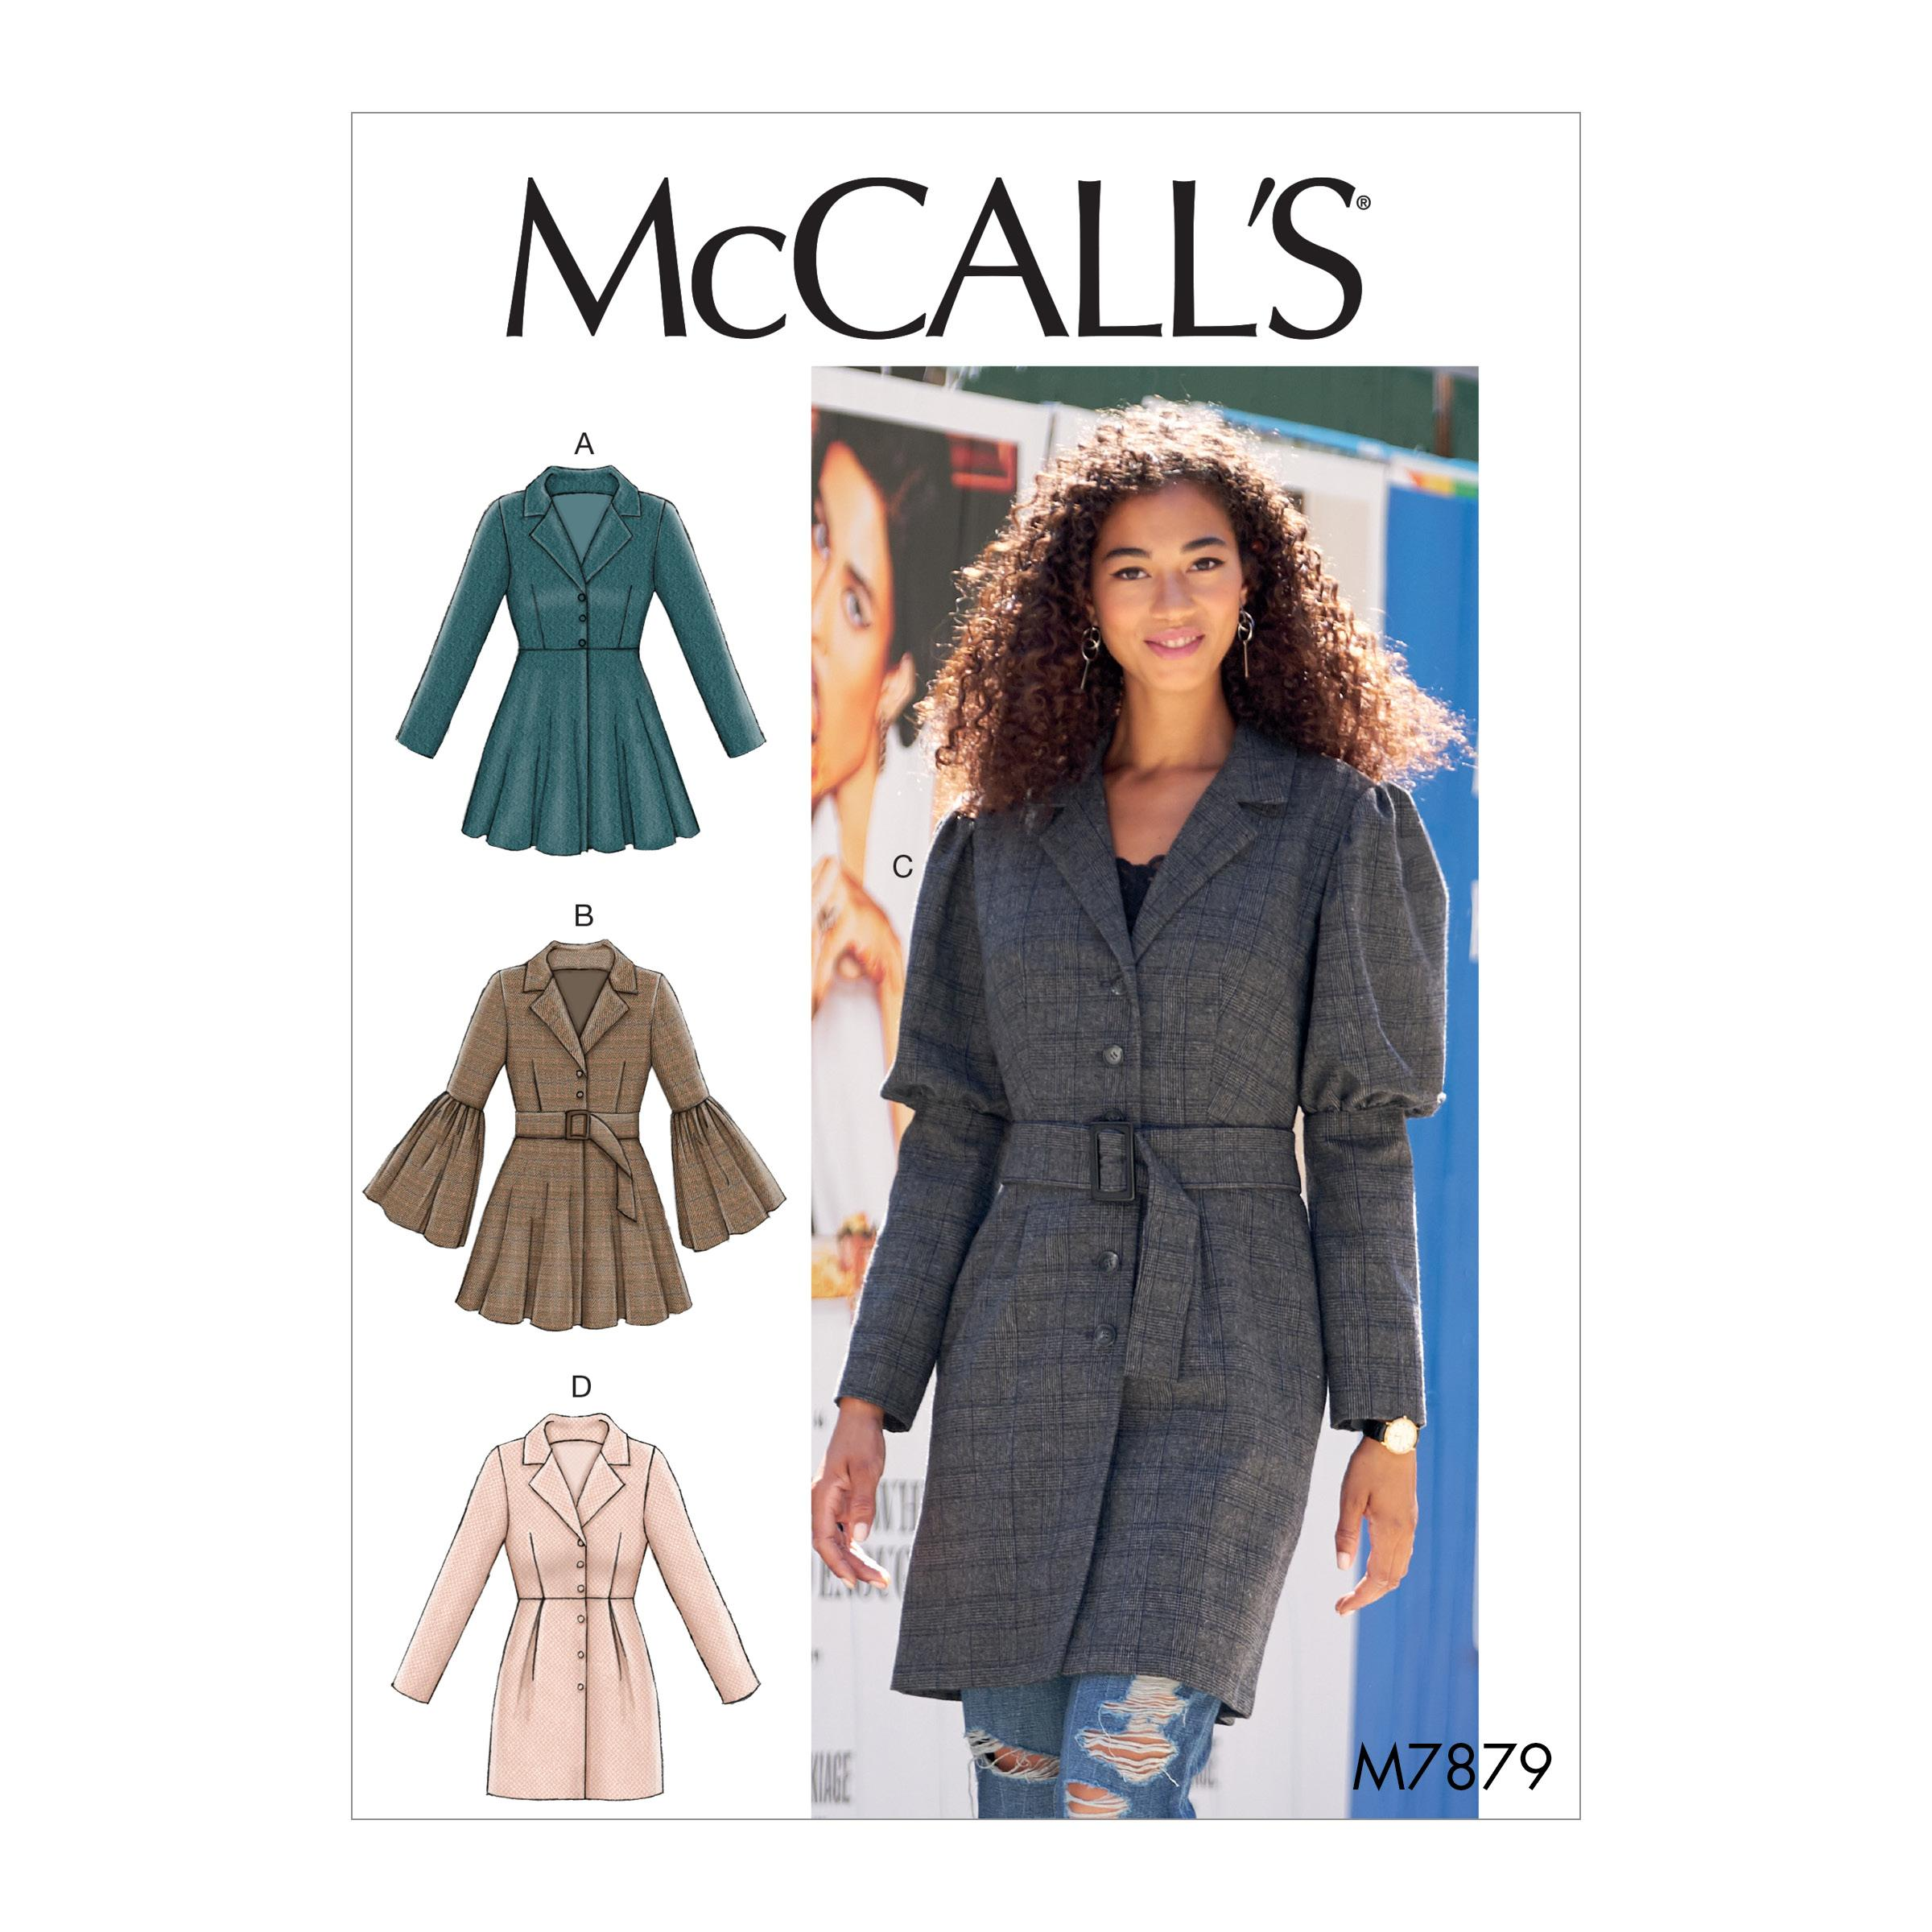 McCalls M7879 Misses Coats, Capes & Ponchos